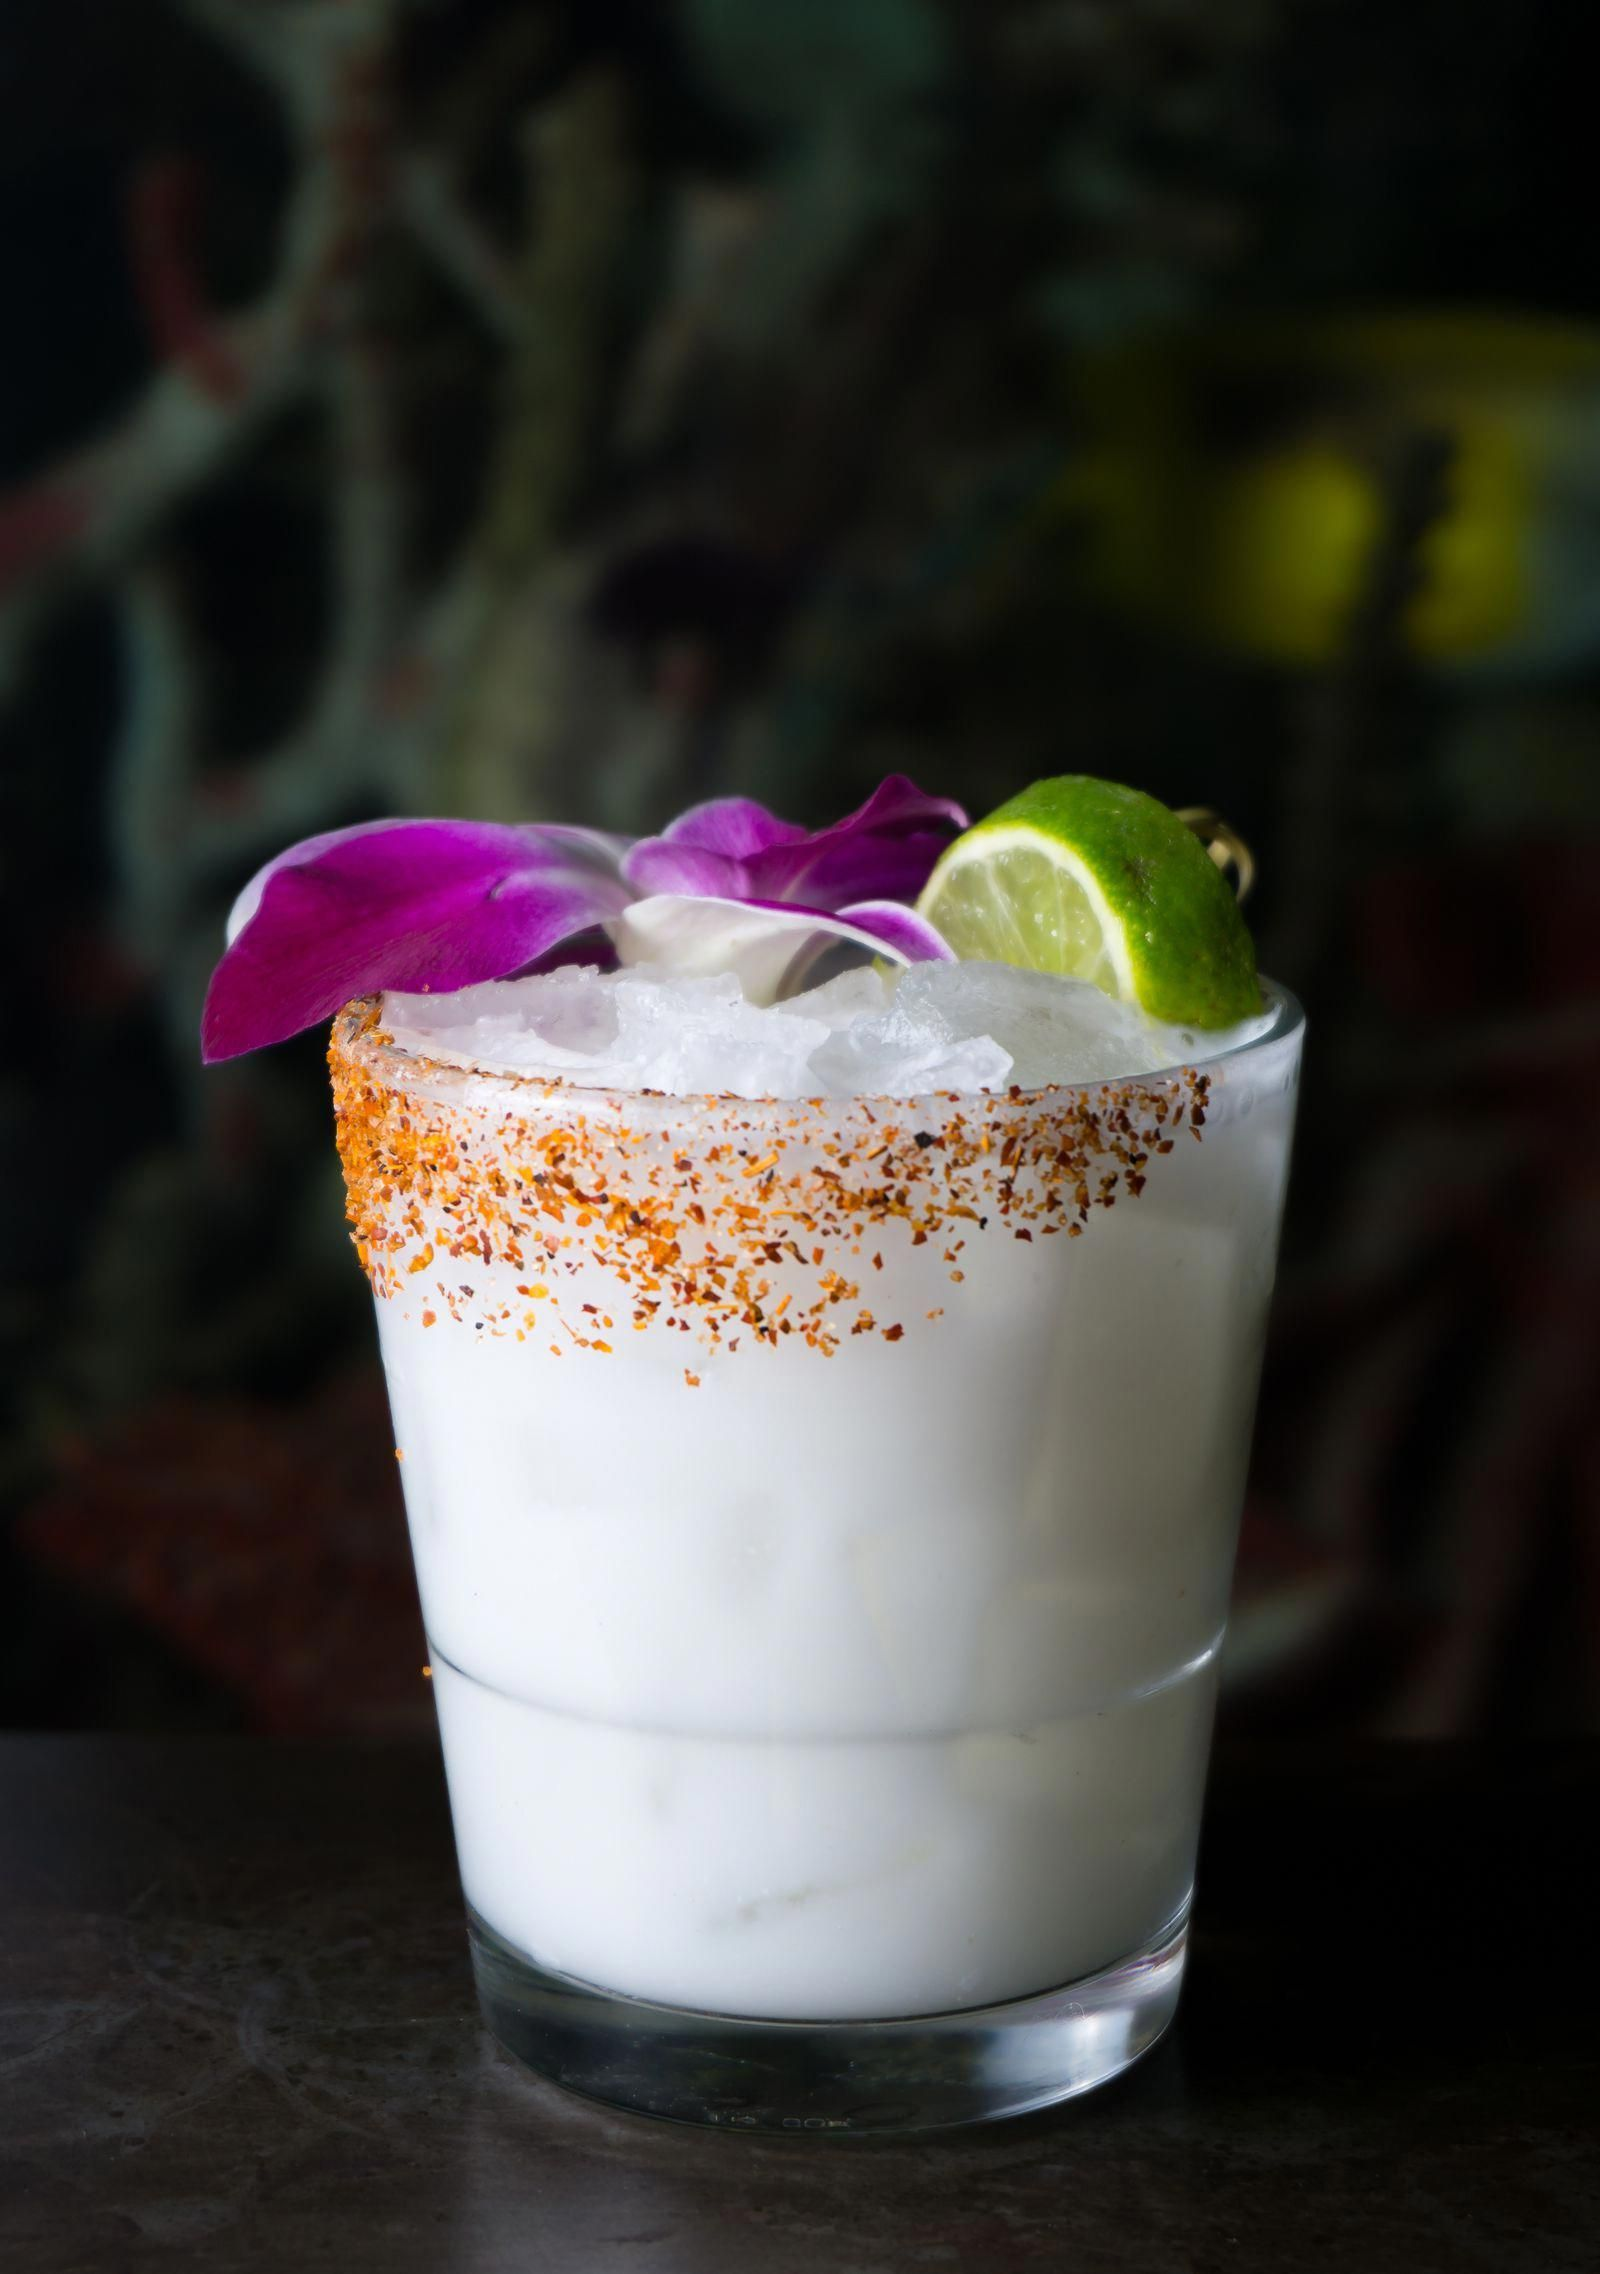 The Marble Queen - 1.5 oz Milagro Tequila 1 oz Coco Lopez cream of ...